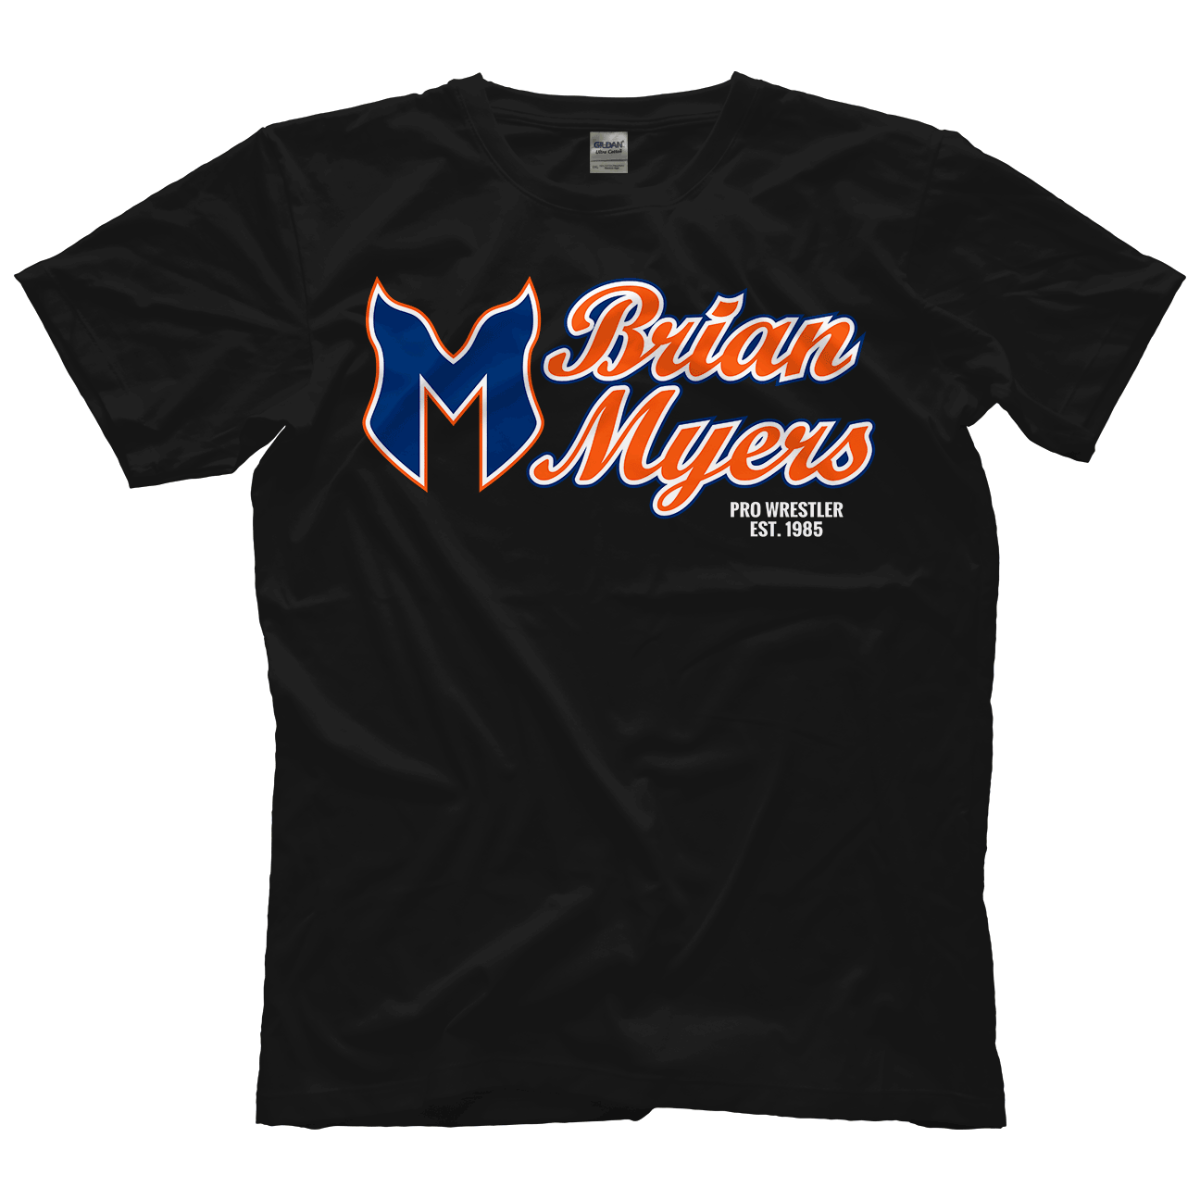 Brian Myers Haru Style T-shirt